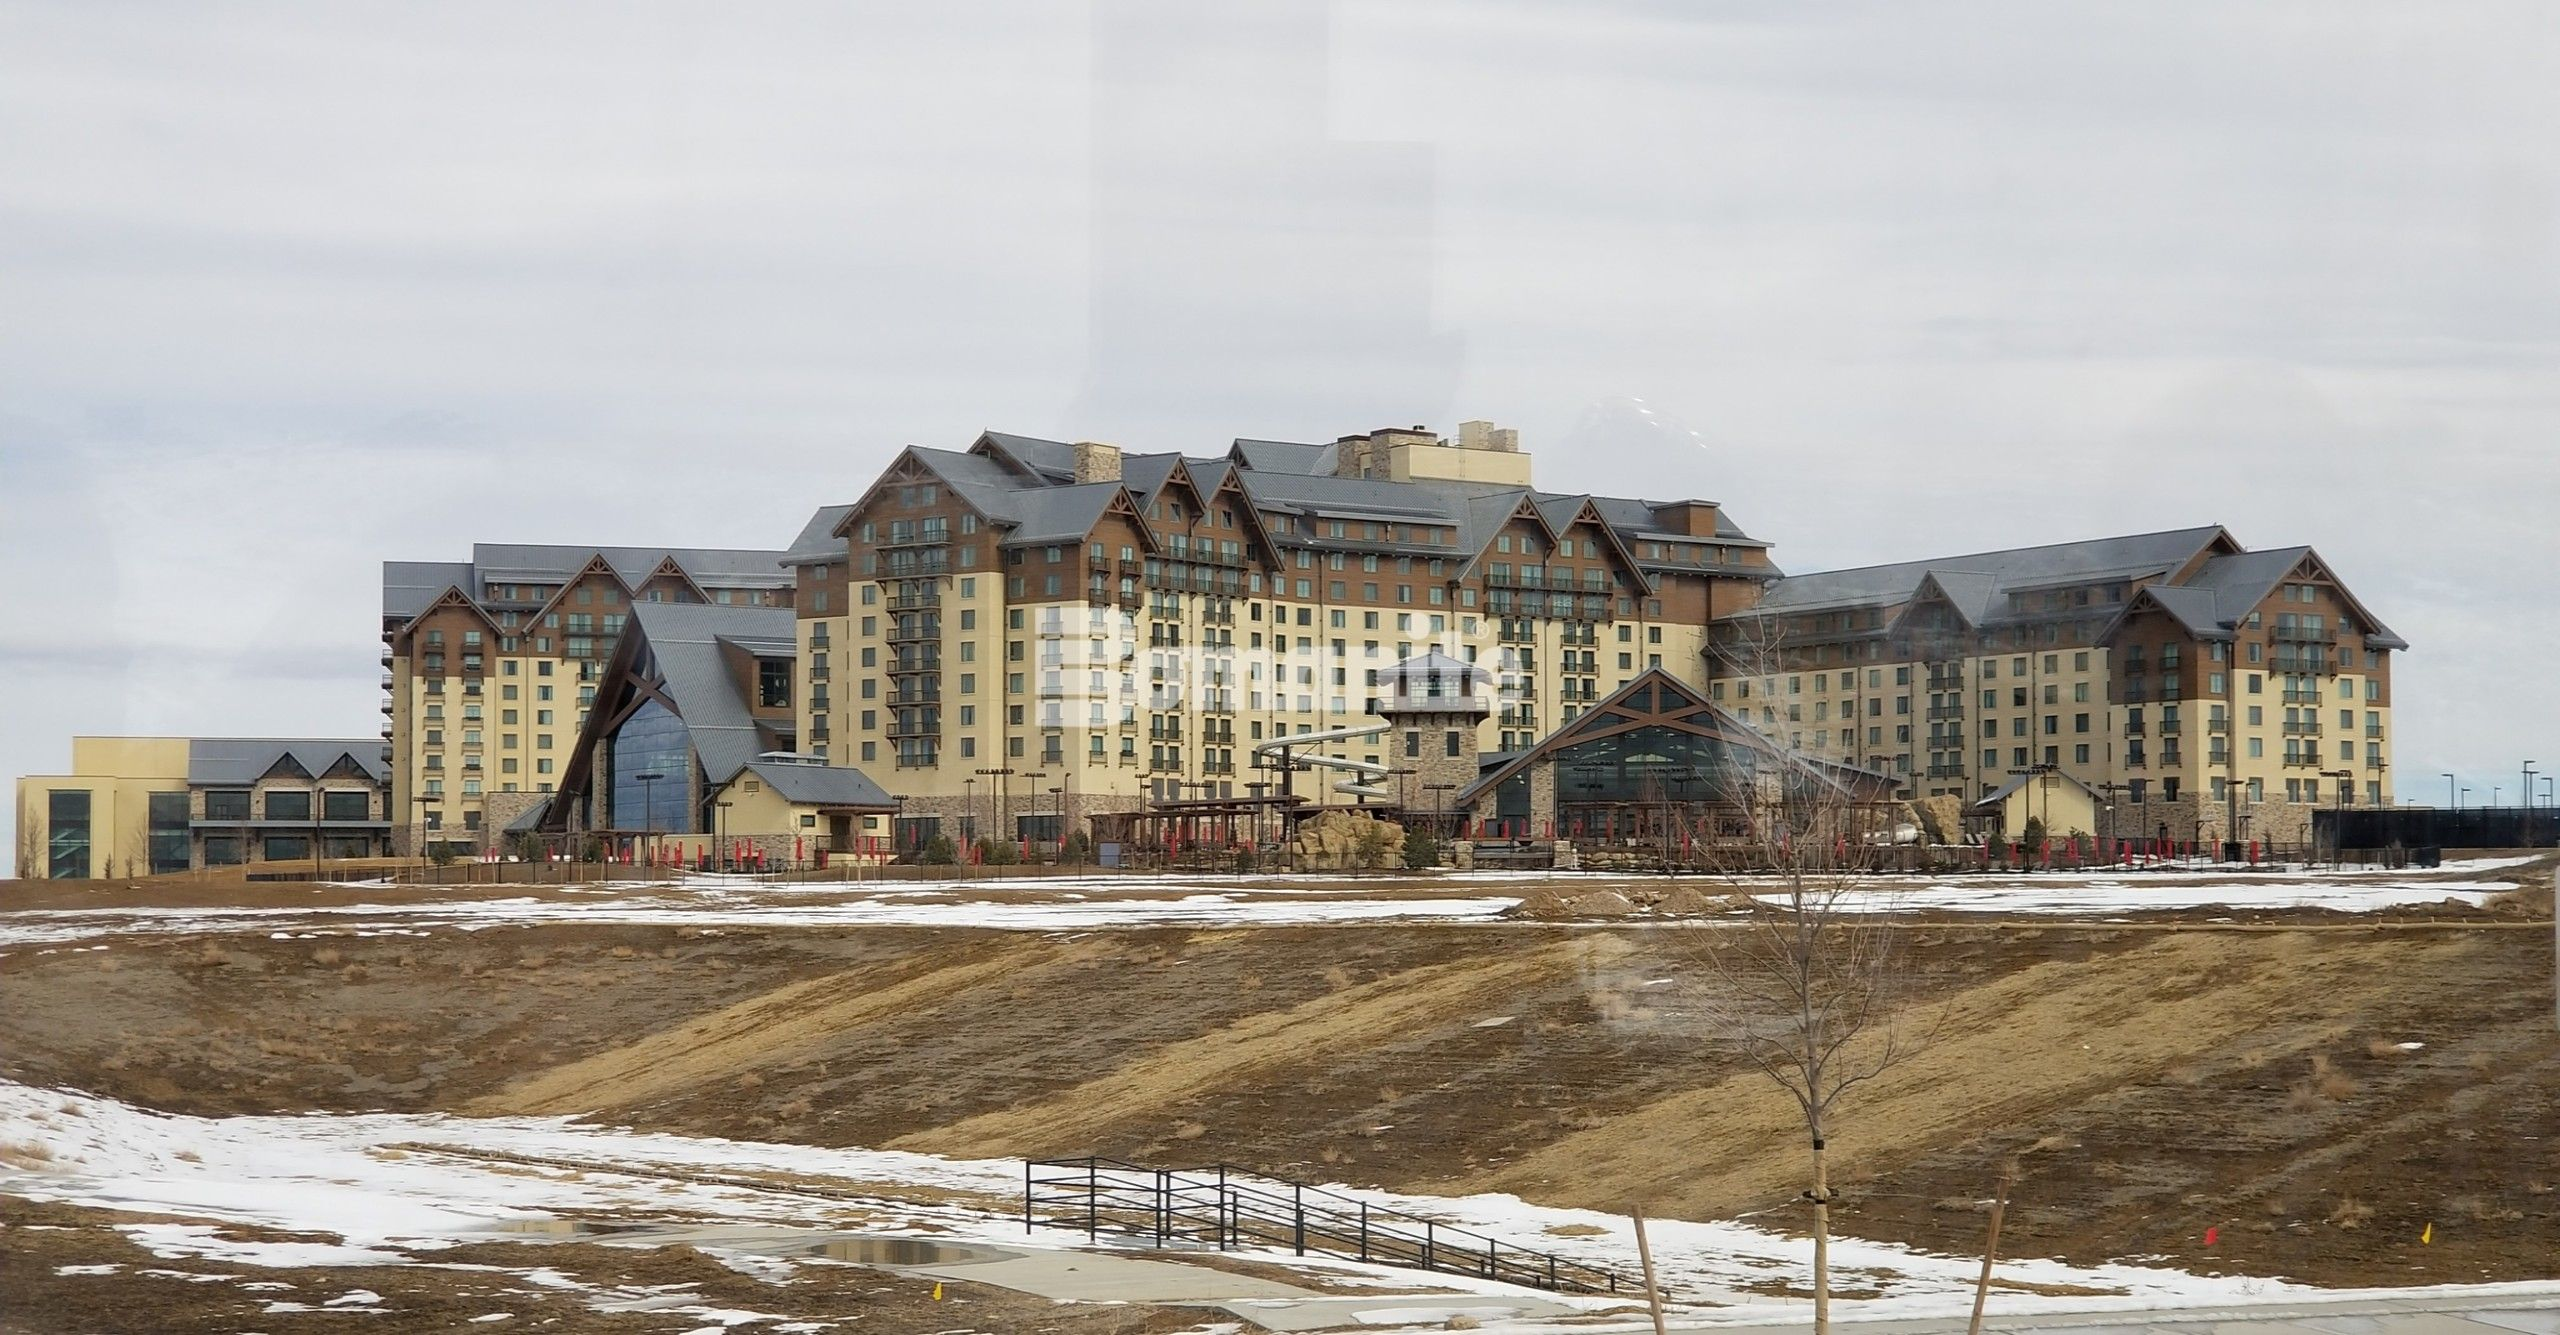 Gaylord Rockies Resort & Convention Center designed to look like an alpine lodge on a huge scale is enhanced with Bomanite Imprint and Bomanite Sandscape Texture decorative concrete in Aurora, CO installed by Colorado Hardscapes.